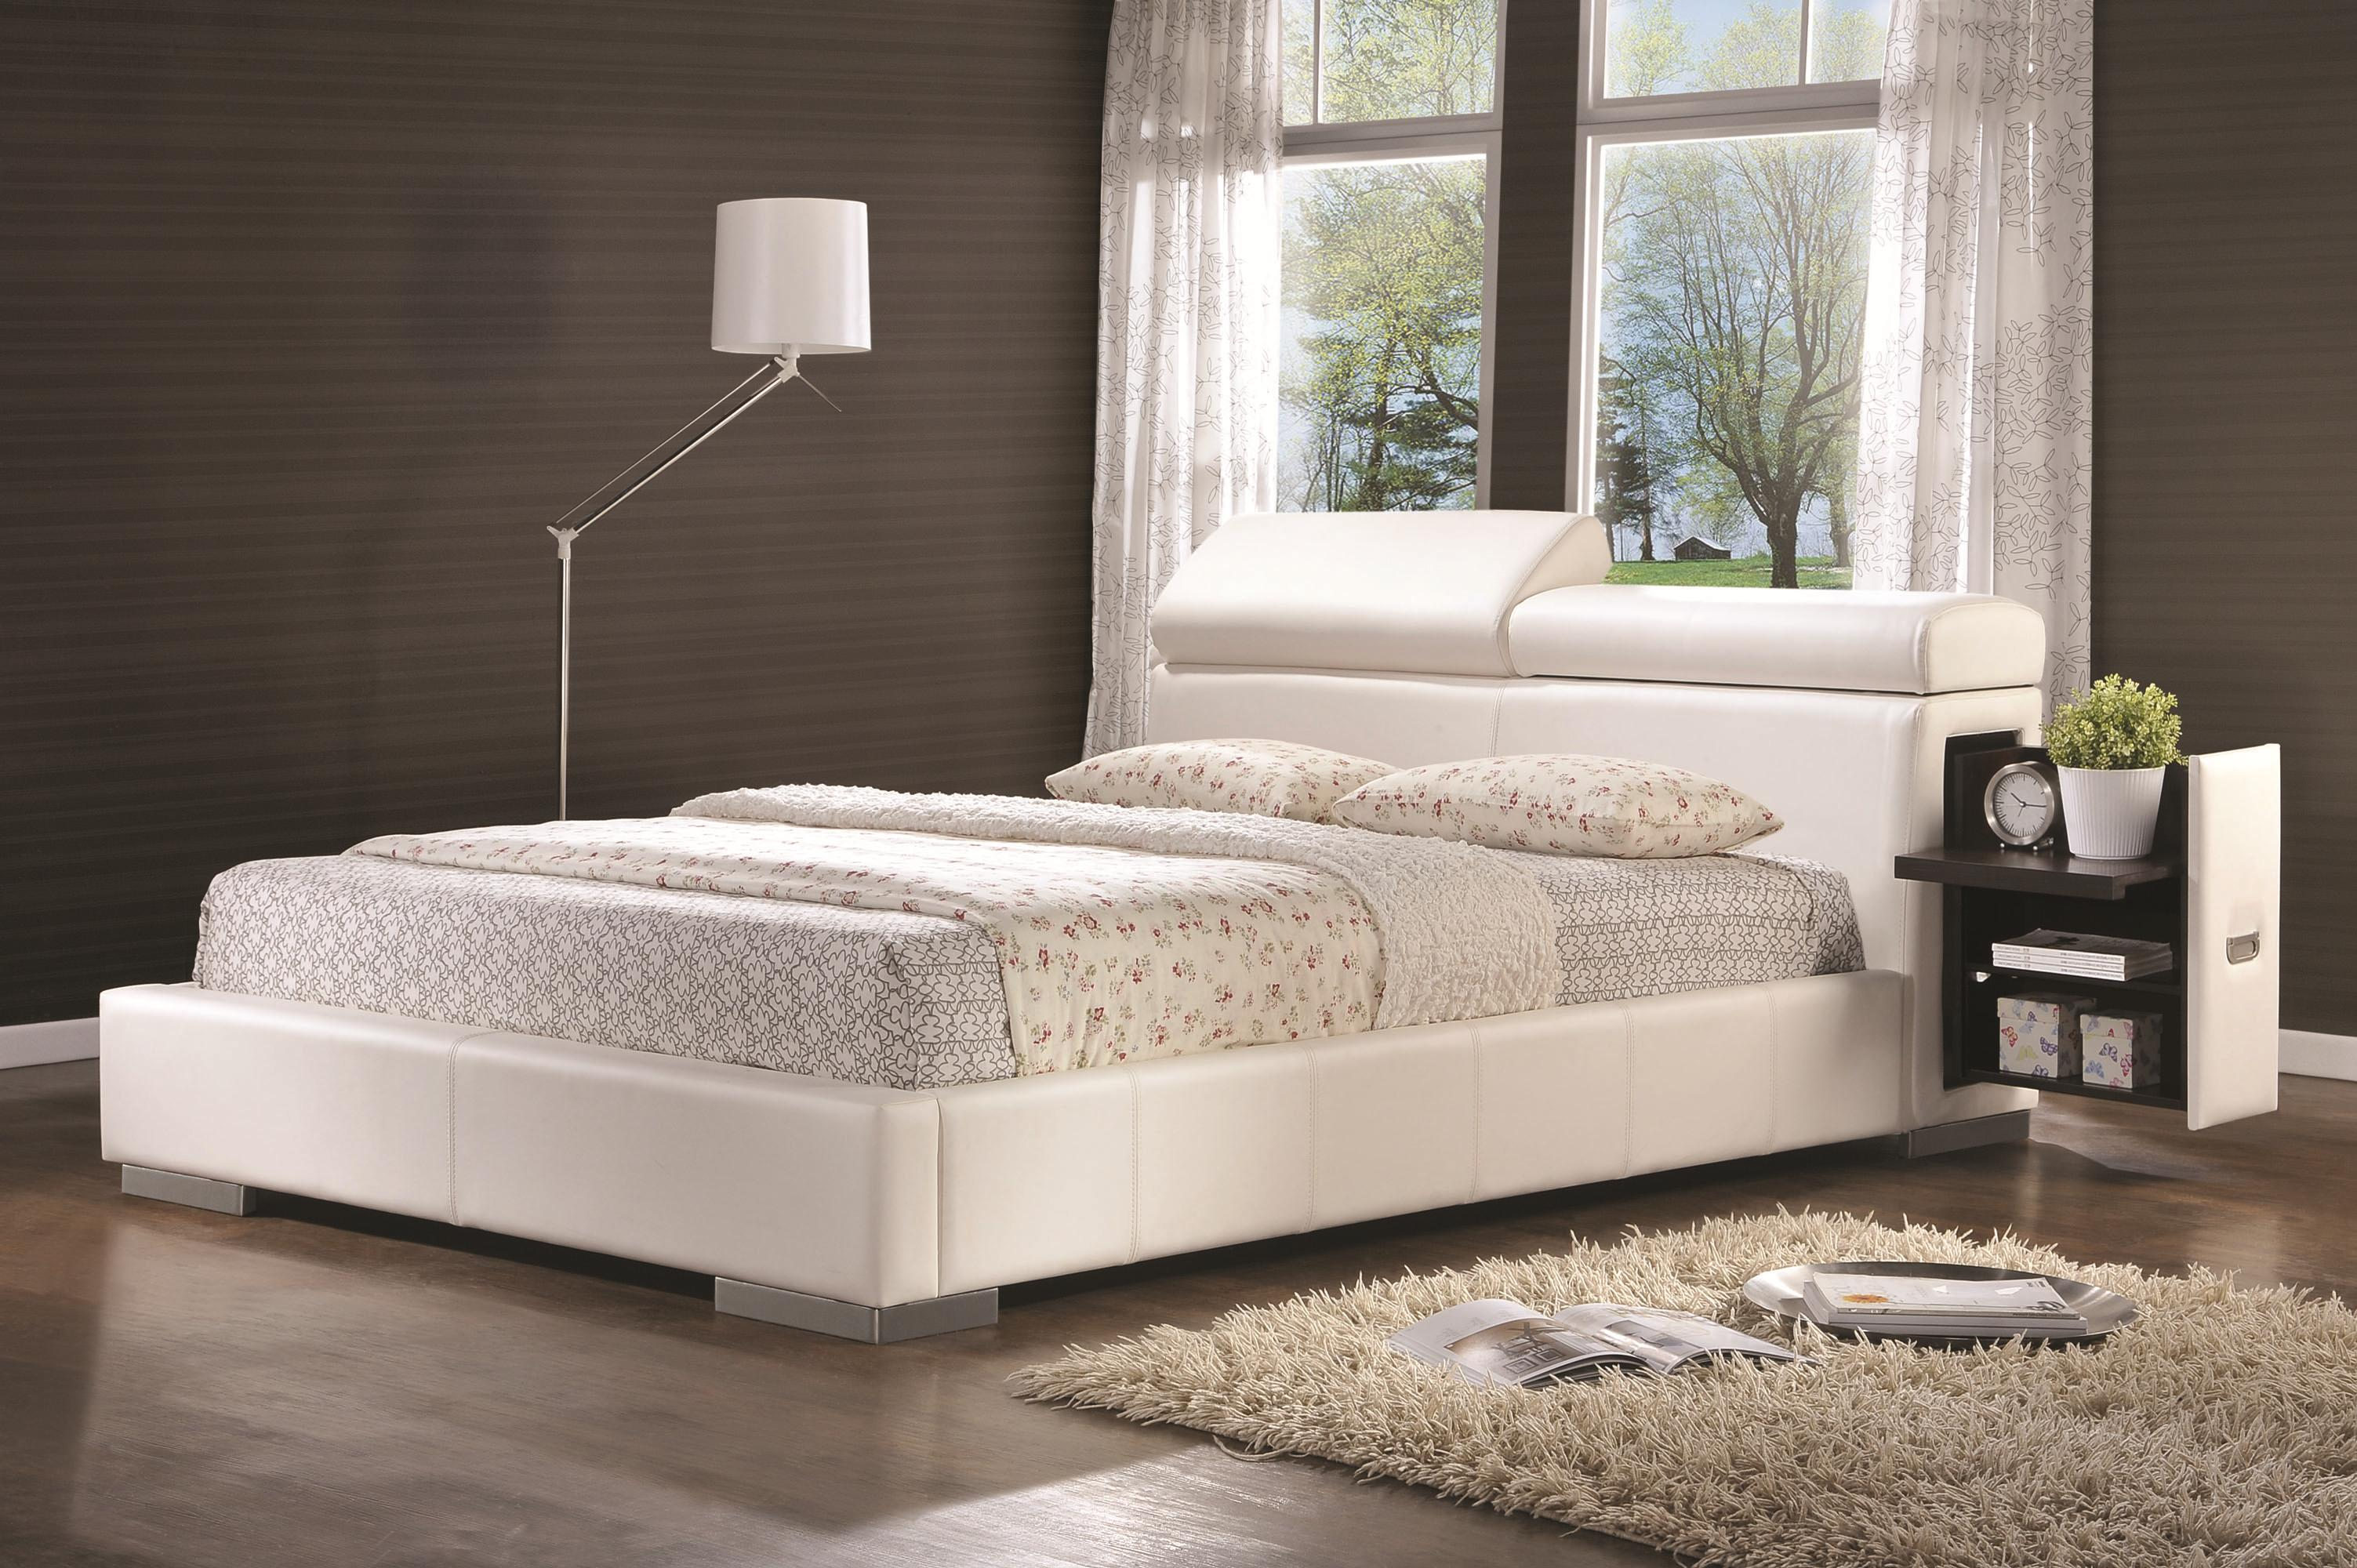 coaster maxine king bed item number 300379ke - Coaster Bed Frame